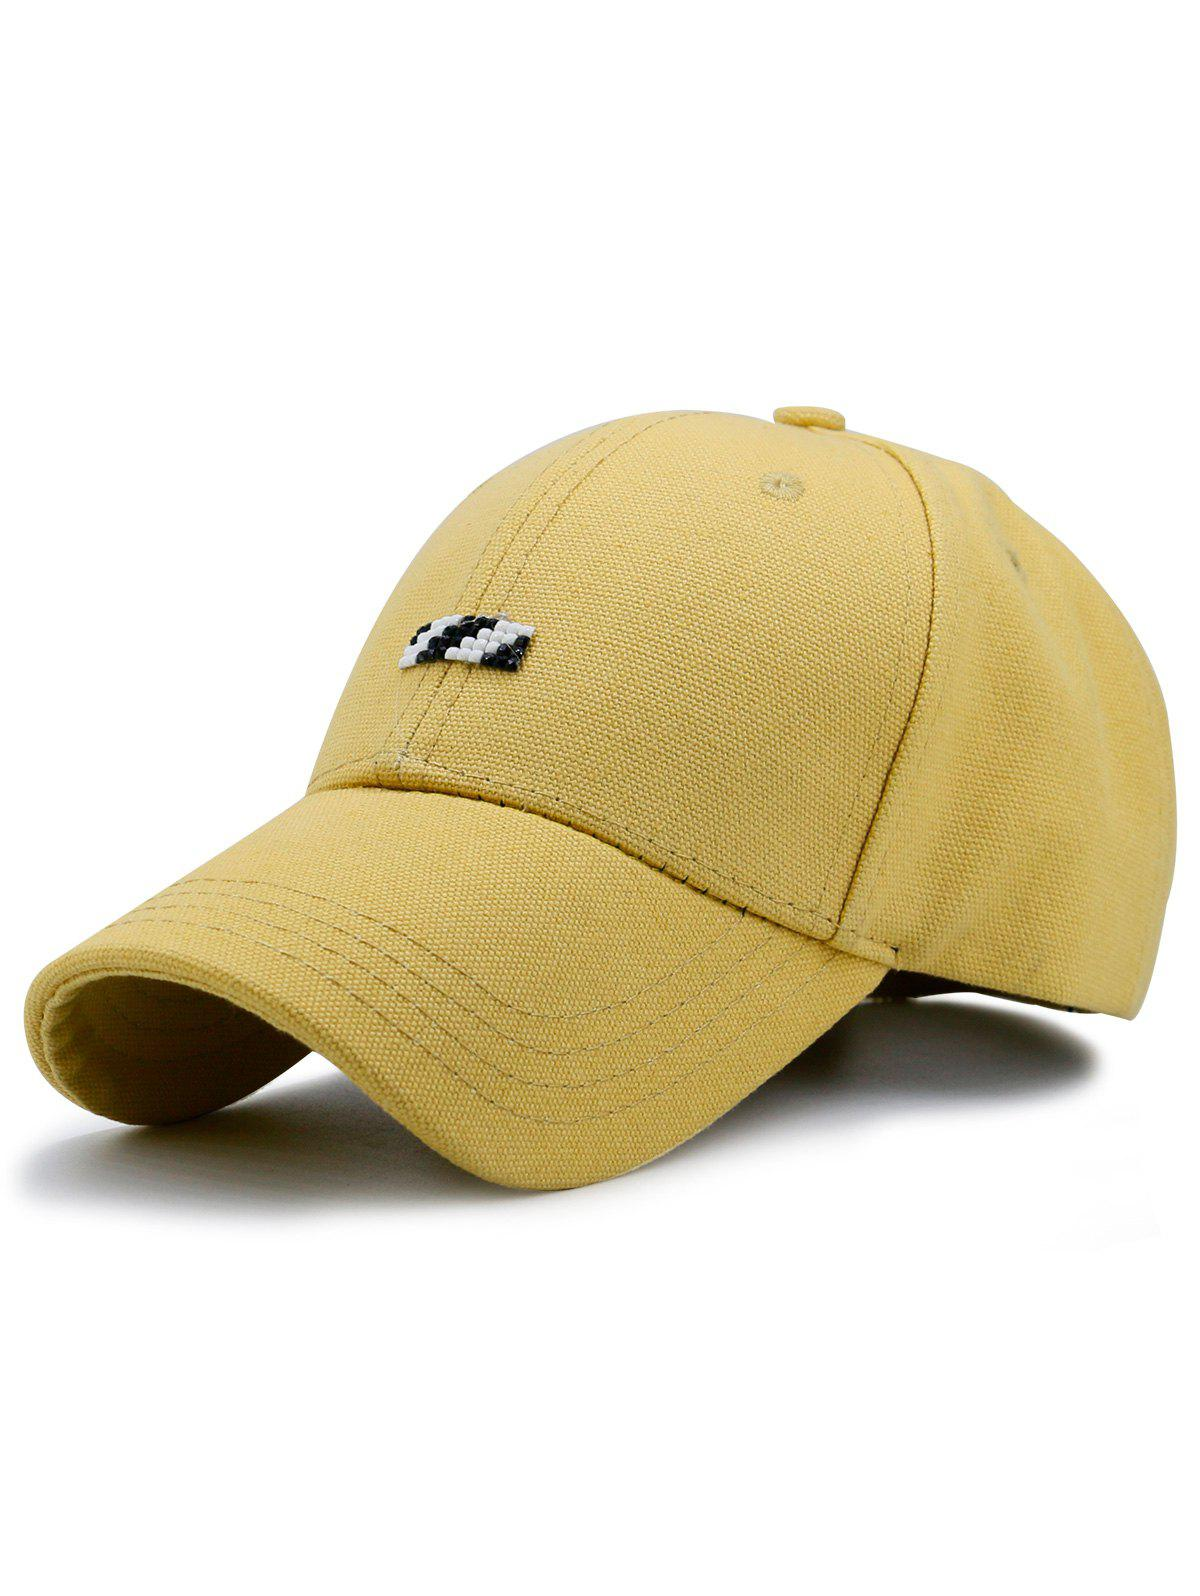 Baseball Hat with Tiny Rectangle Patchwork - YELLOW